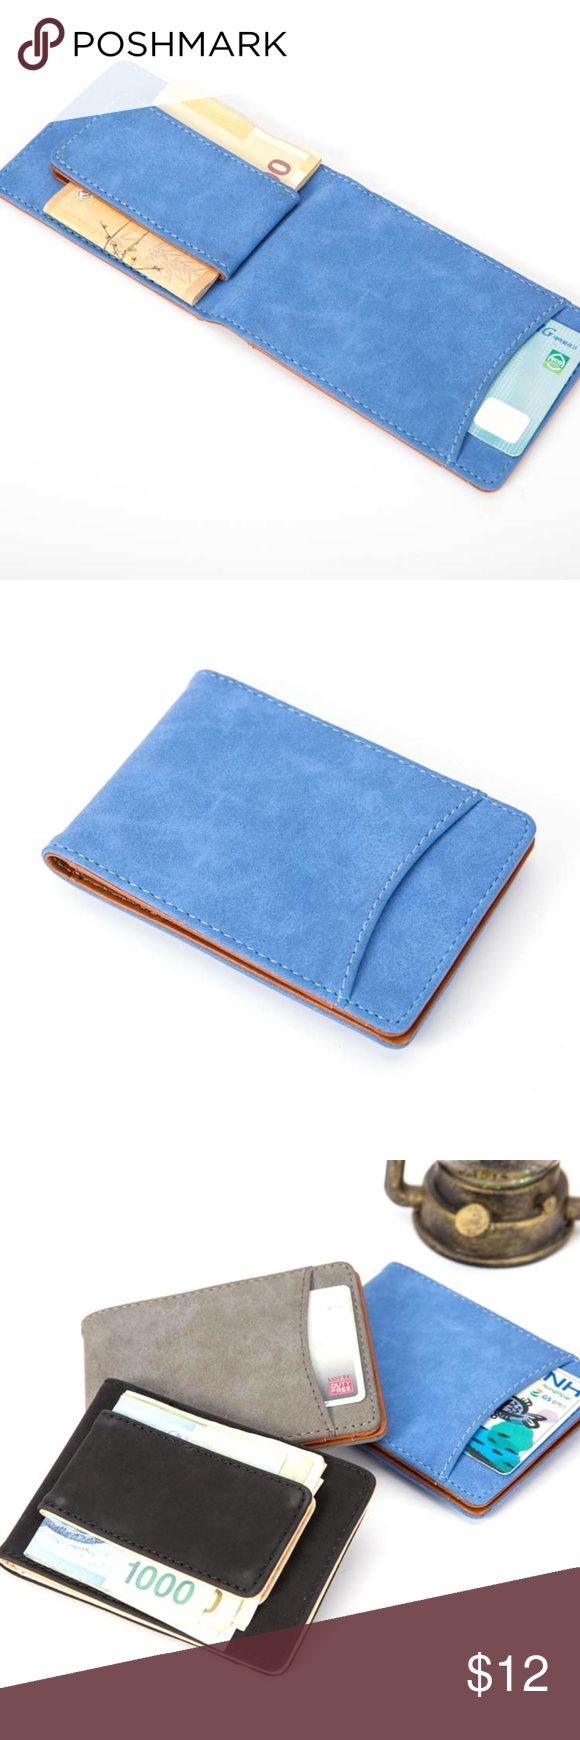 "Slim Wallet Money Clip Unisex Features: Casual, Travel style, for men and women Bullet Points: dull polish  Condition: Brand new, casual style, portable  Material: dull polish leather  Style: ID CARD Wallet  Size: 4.5"" x 3"" Bags Wallets"